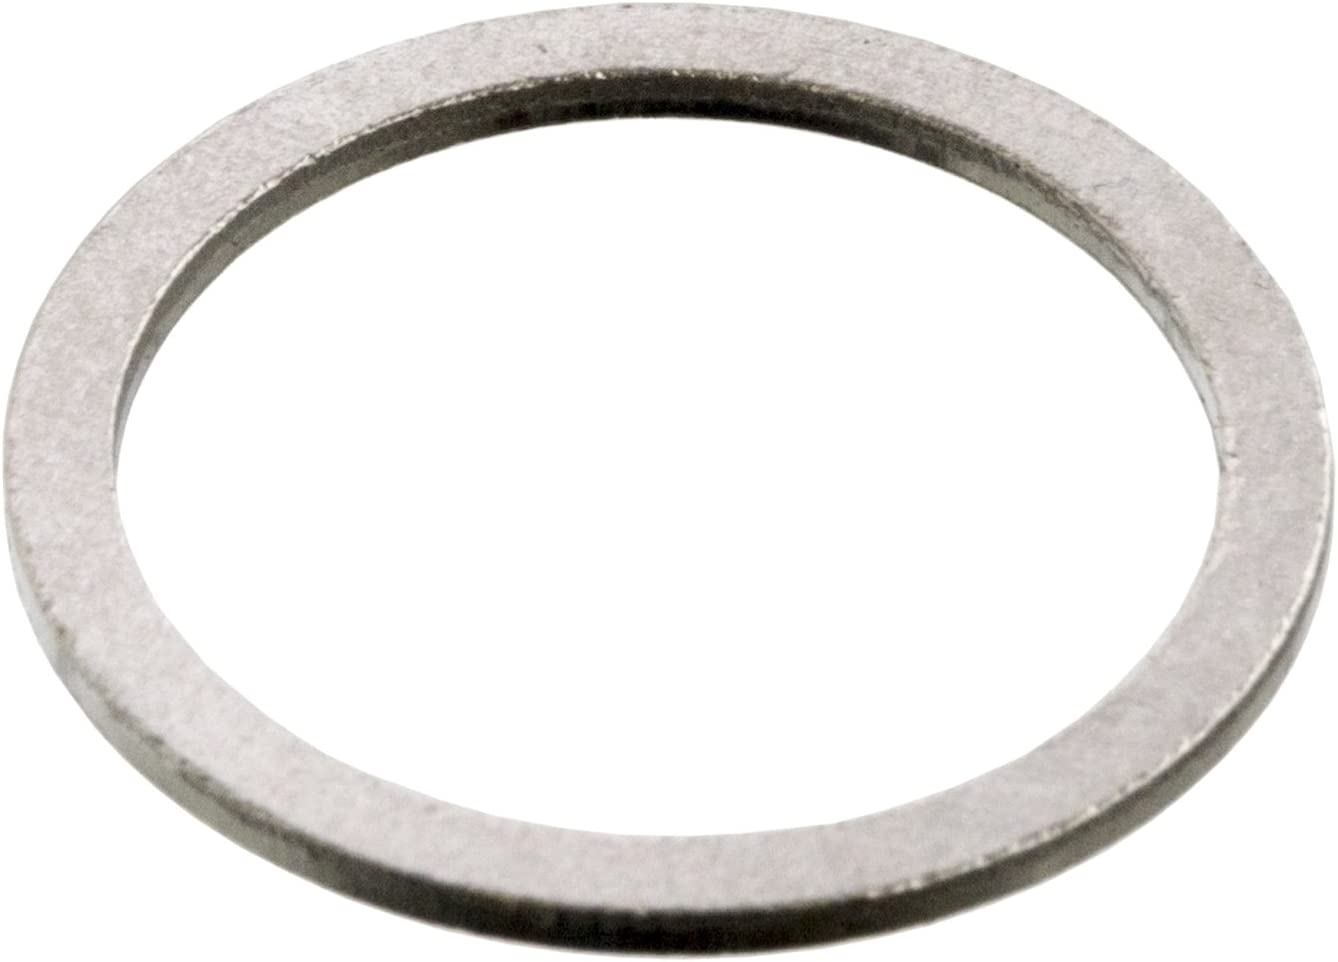 febi bilstein 05552 Seal Ring for chain tensioner pack of one